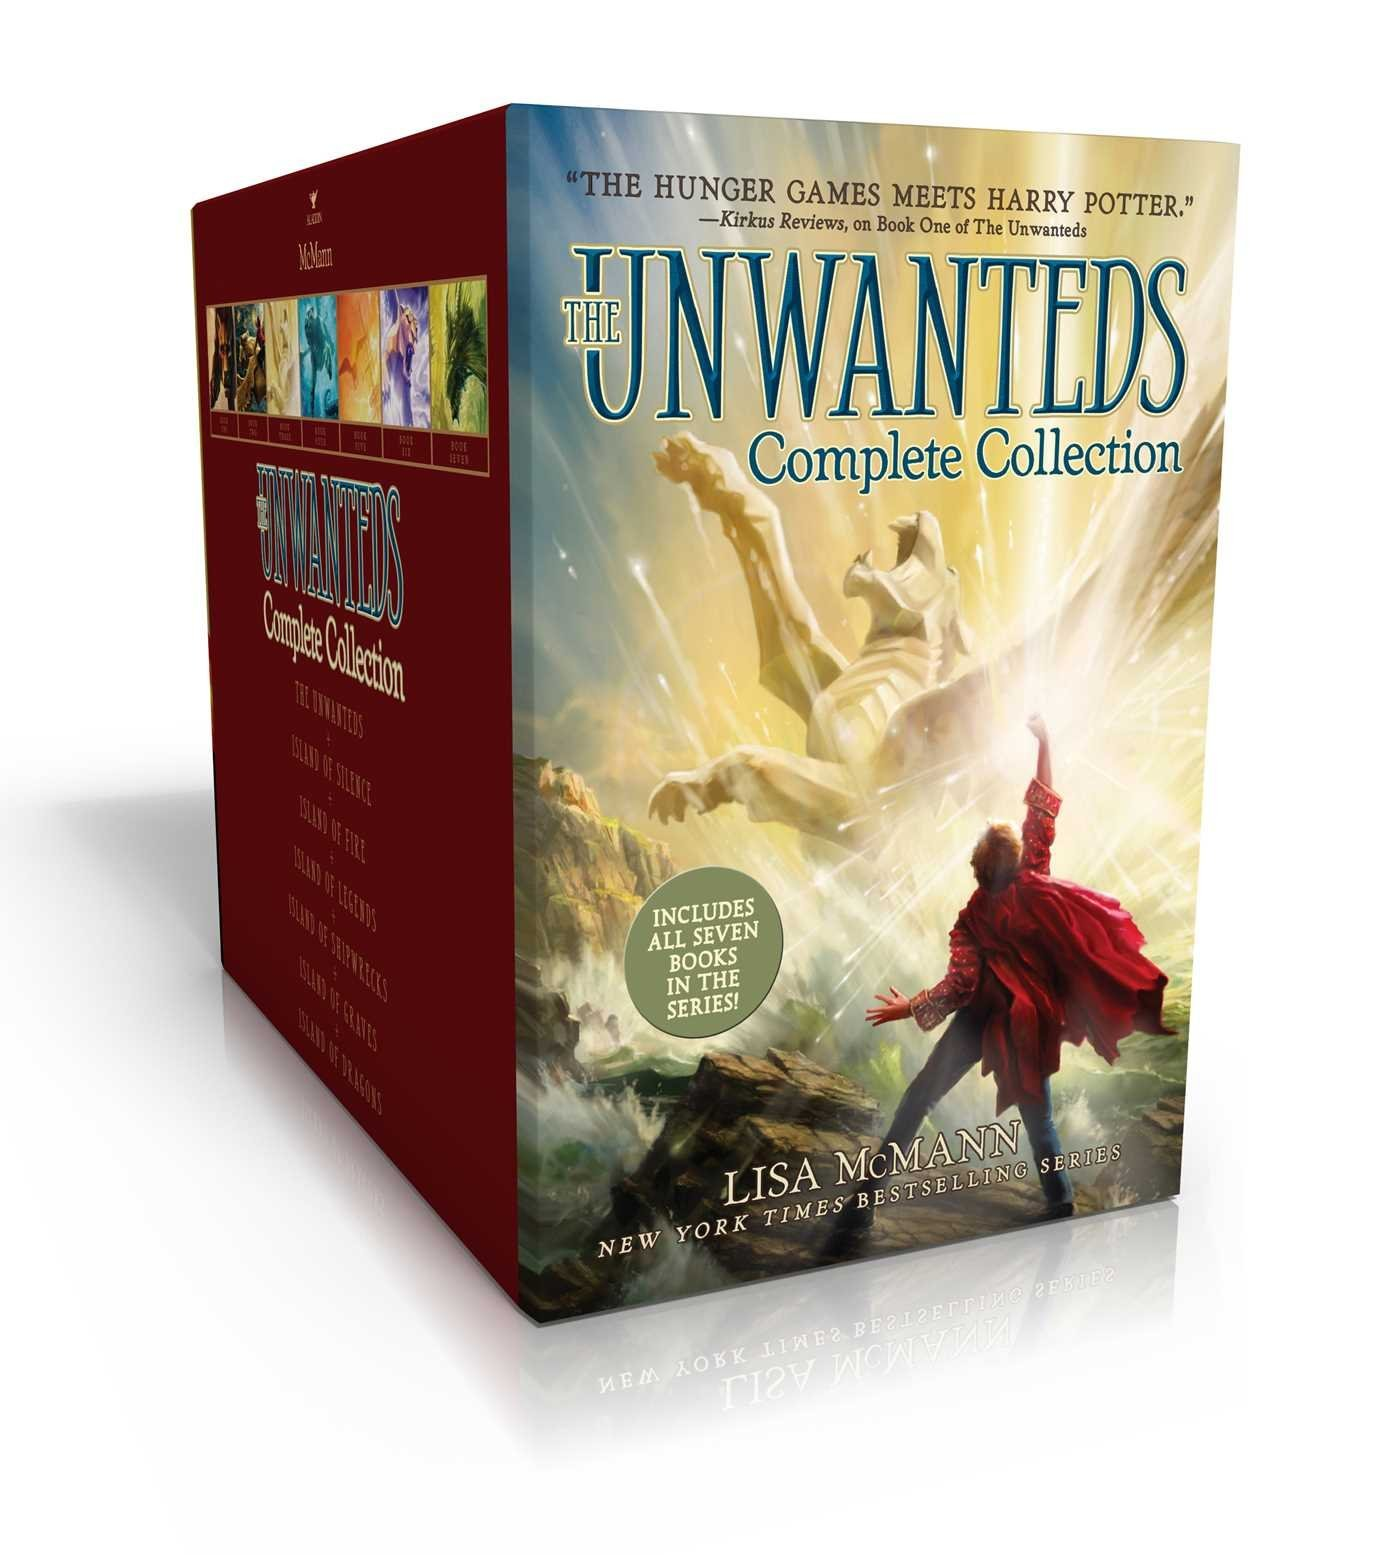 The Unwanteds Complete Collection: The Unwanteds; Island of Silence; Island of Fire; Island of Legends; Island of Shipwrecks; Island of Graves; Island of Dragons